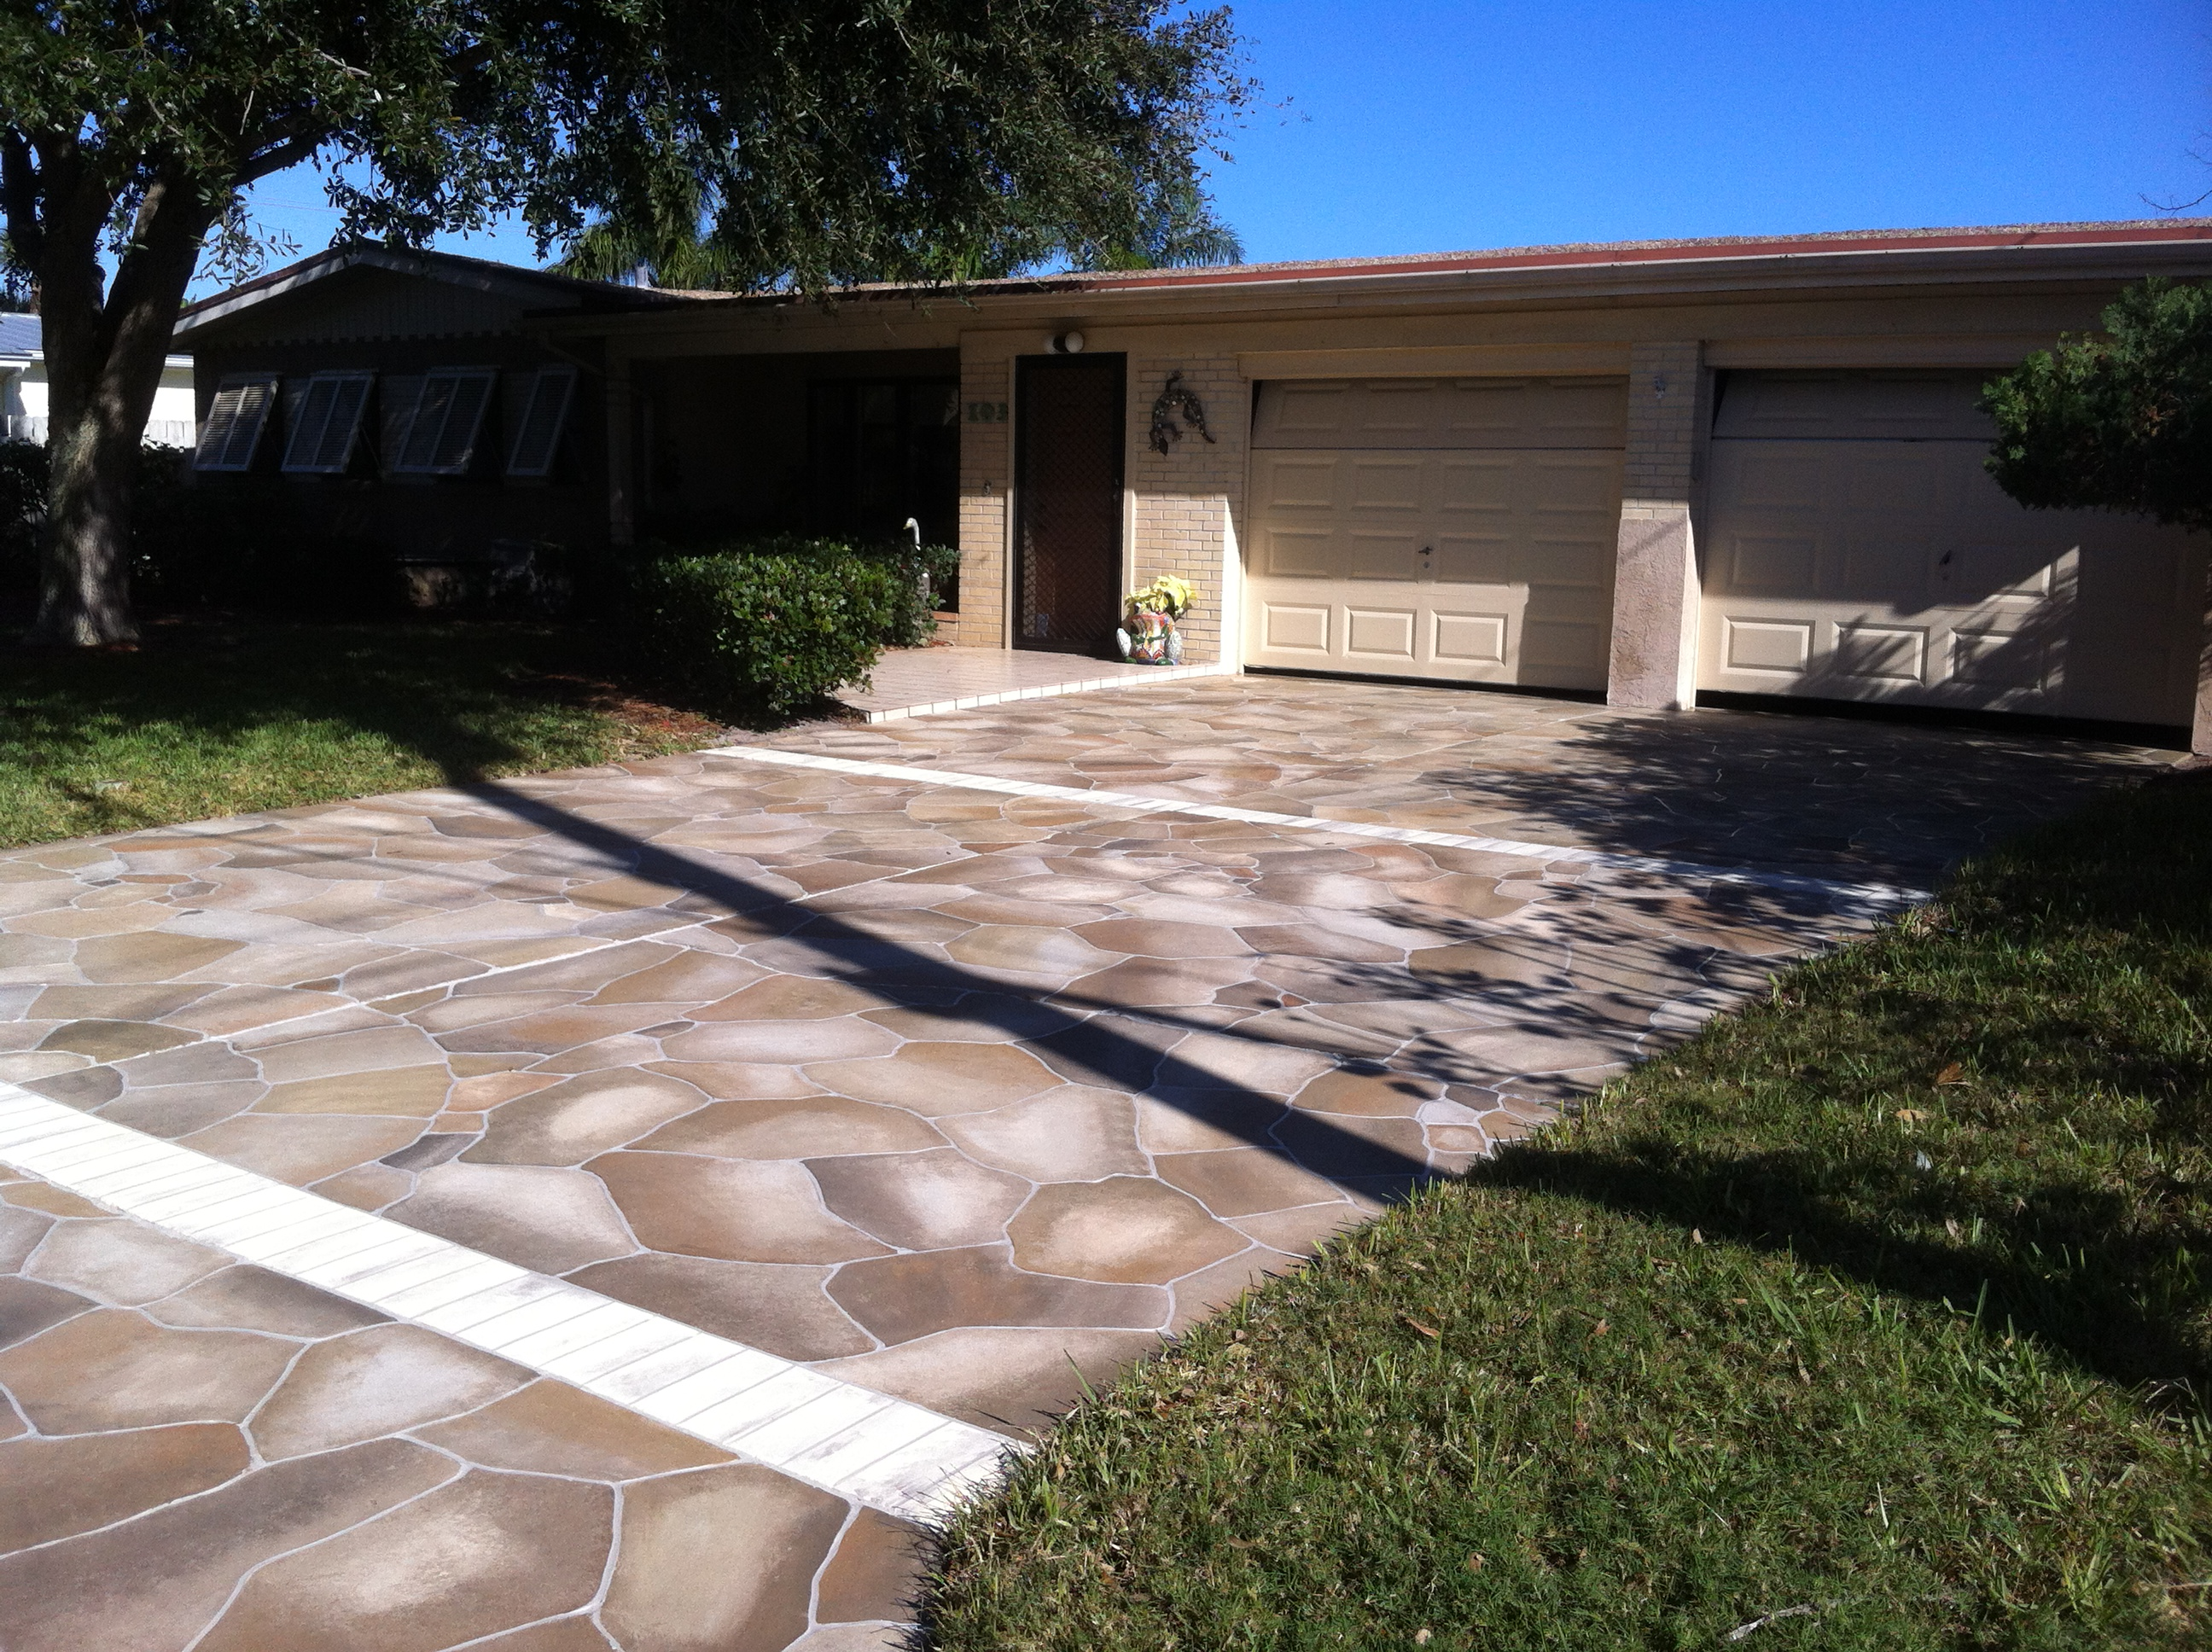 Awesome home driveway design ideas ideas decoration design ideas Home driveway design ideas